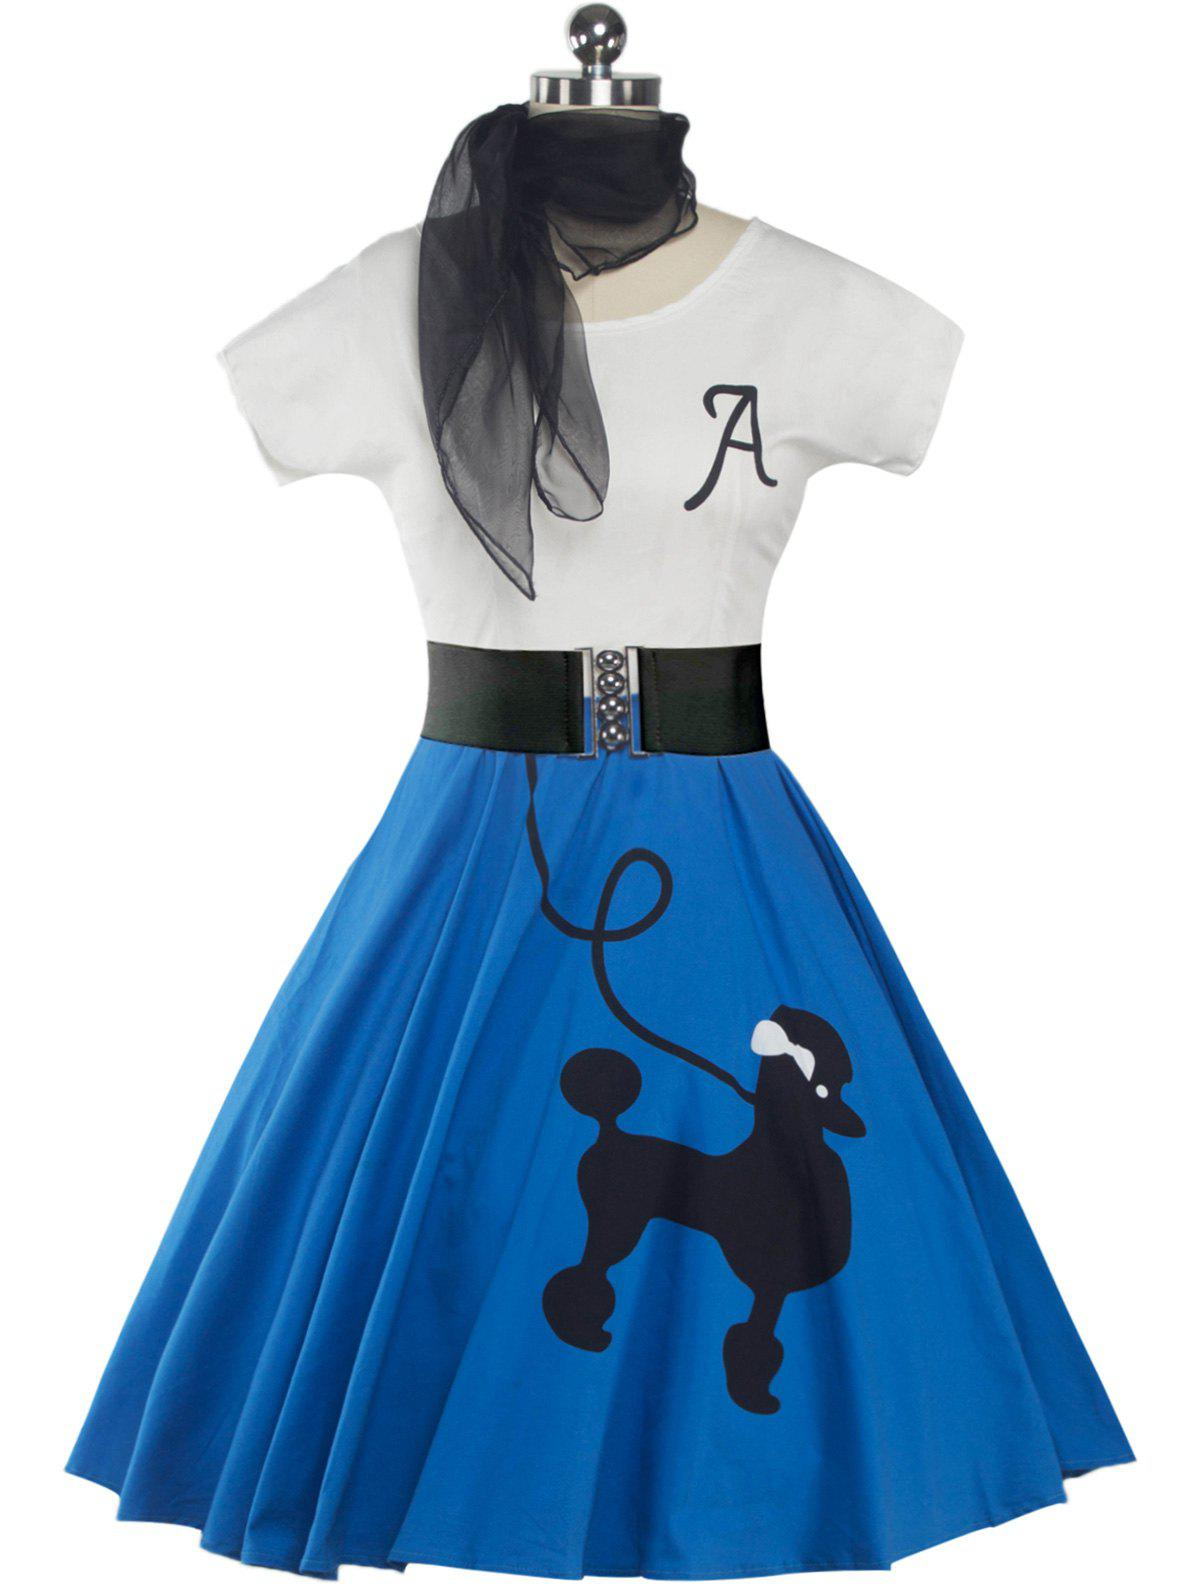 Retro Poodle Print High Waist Skater DressWOMEN<br><br>Size: 2XL; Color: BRIGHT BLUE; Style: Vintage; Material: Polyester; Silhouette: A-Line; Dresses Length: Knee-Length; Neckline: Scoop Neck; Sleeve Length: Short Sleeves; Pattern Type: Animal; With Belt: Yes; Season: Spring,Summer; Weight: 0.420kg; Package Contents: 1 x Dress  1 x Belt  1 x Scarf;